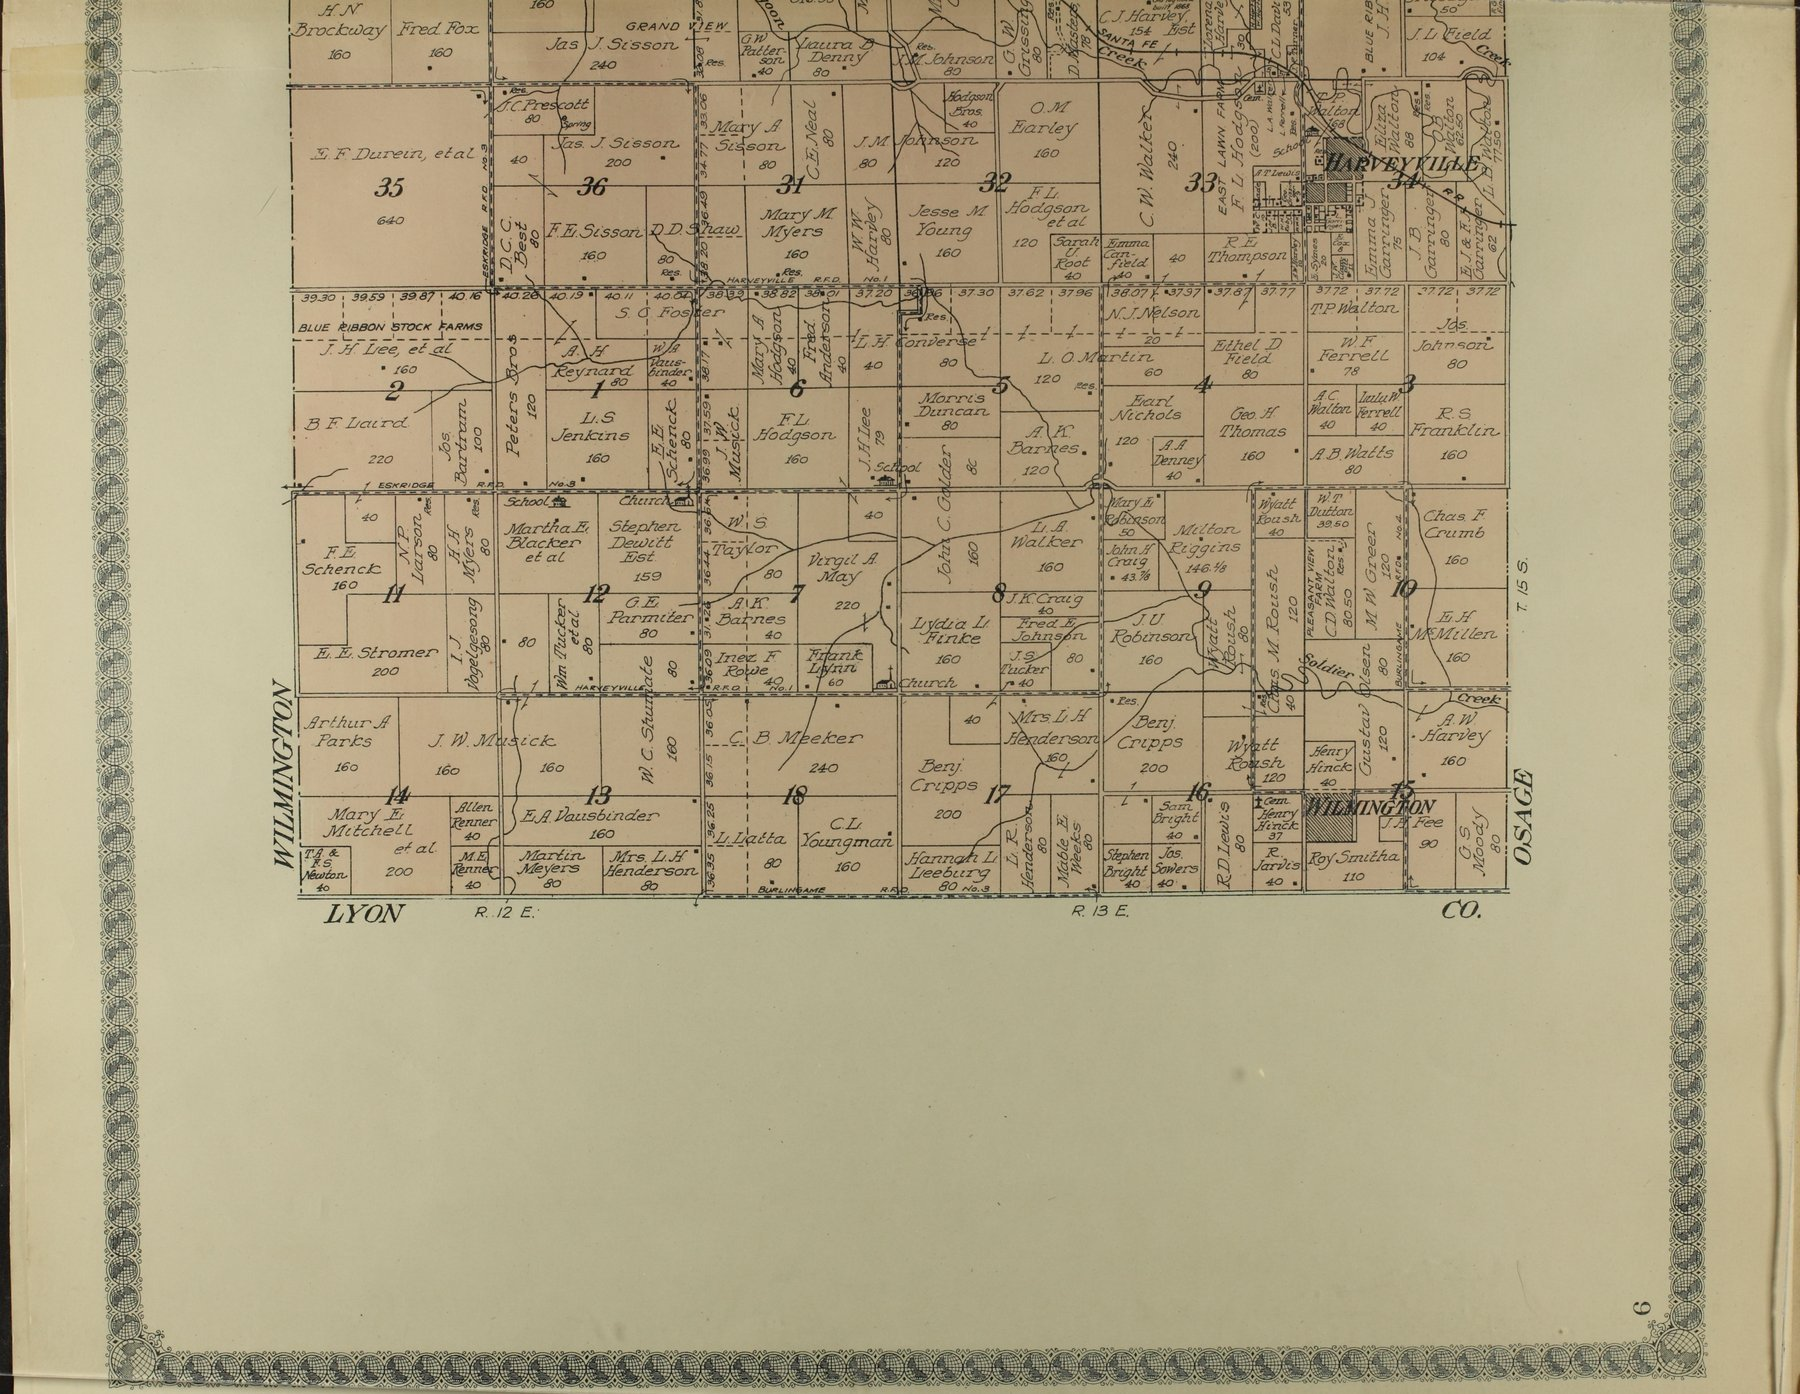 Standard atlas of Wabaunsee County, Kansas - 9